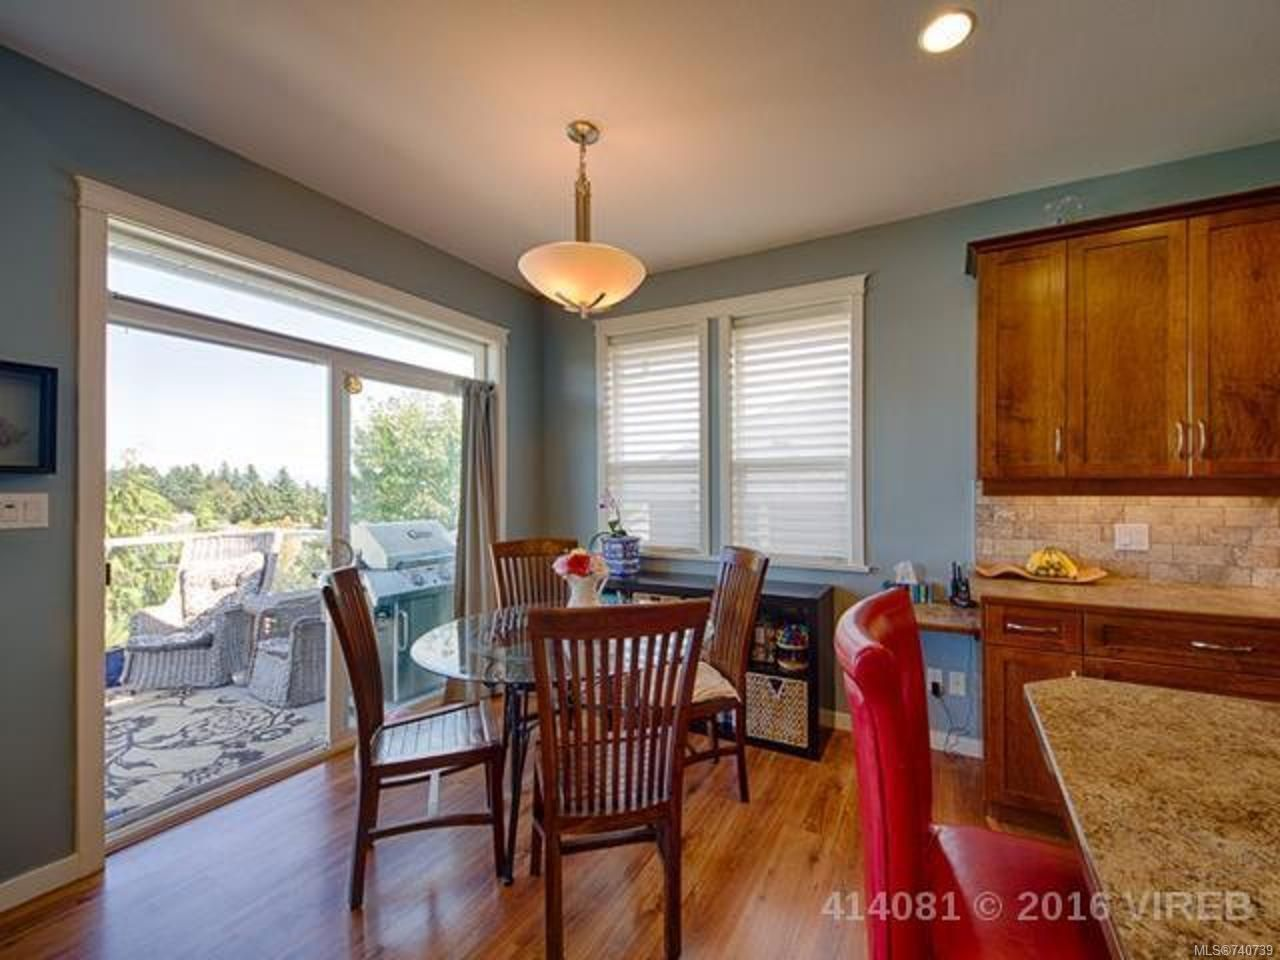 Photo 6: Photos: 632 Nelson Rd in CAMPBELL RIVER: CR Willow Point House for sale (Campbell River)  : MLS®# 740739